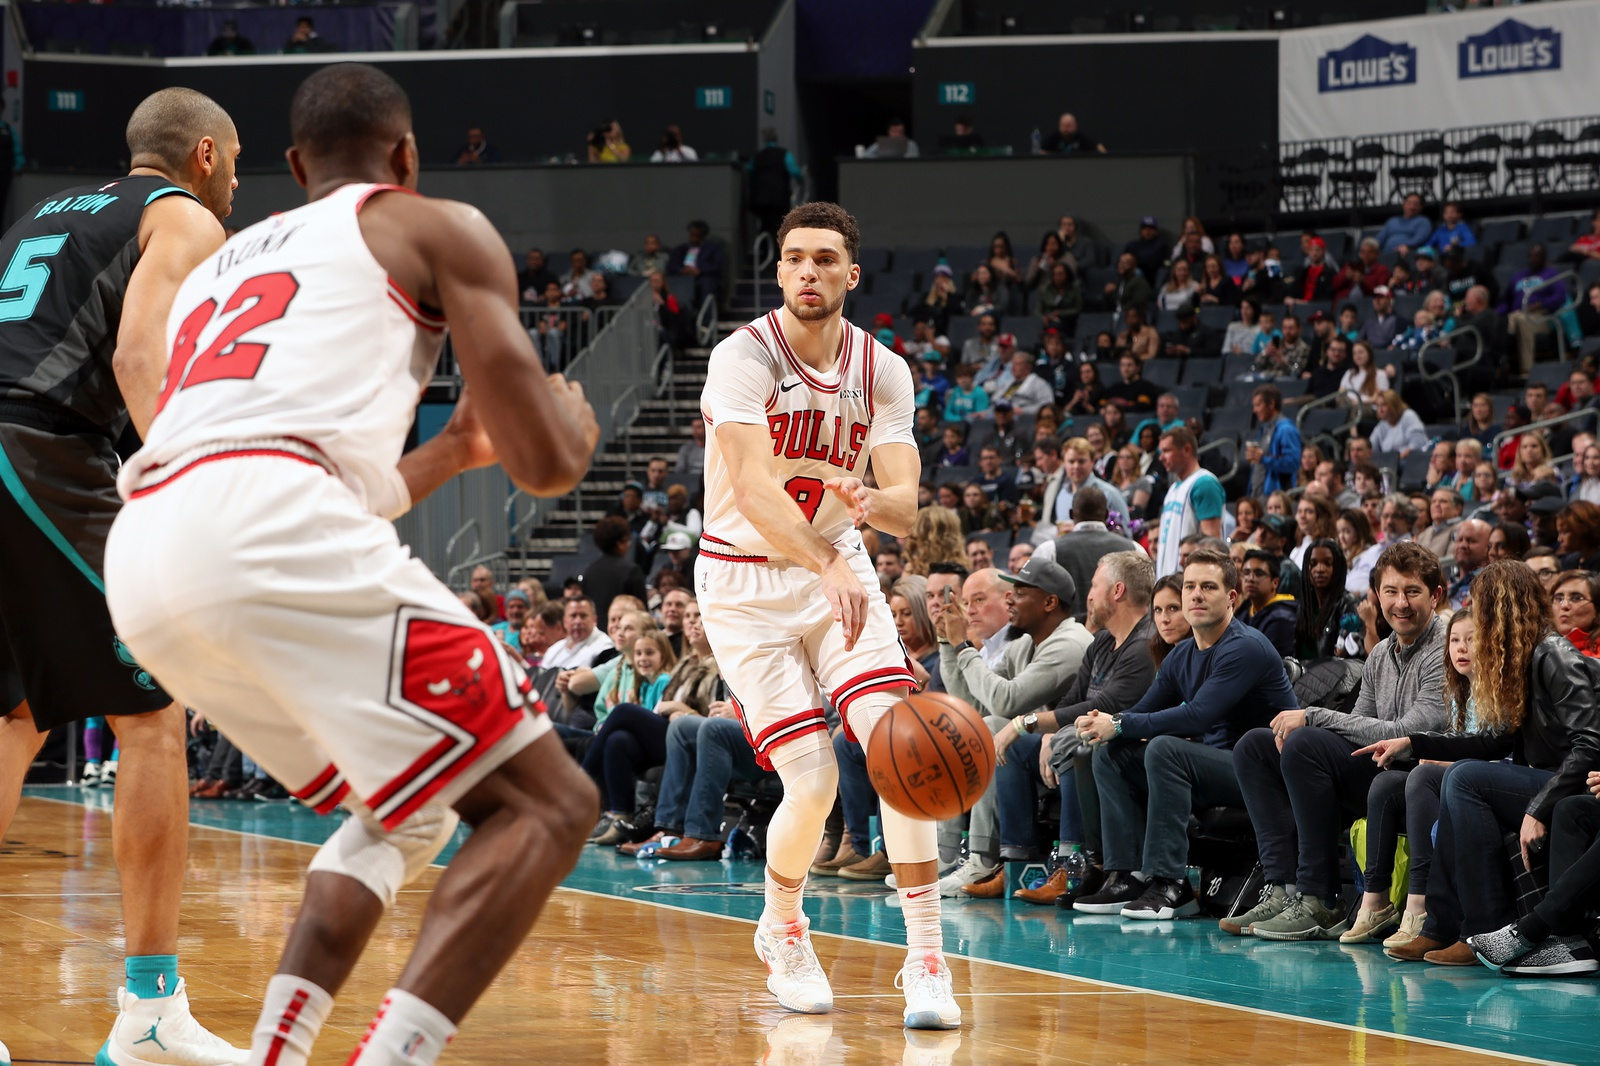 Zach LaVine #8 of the Chicago Bulls passes the ball against the Charlotte Hornets on February 2, 2019 at the Spectrum Center in Charlotte, North Carolina.